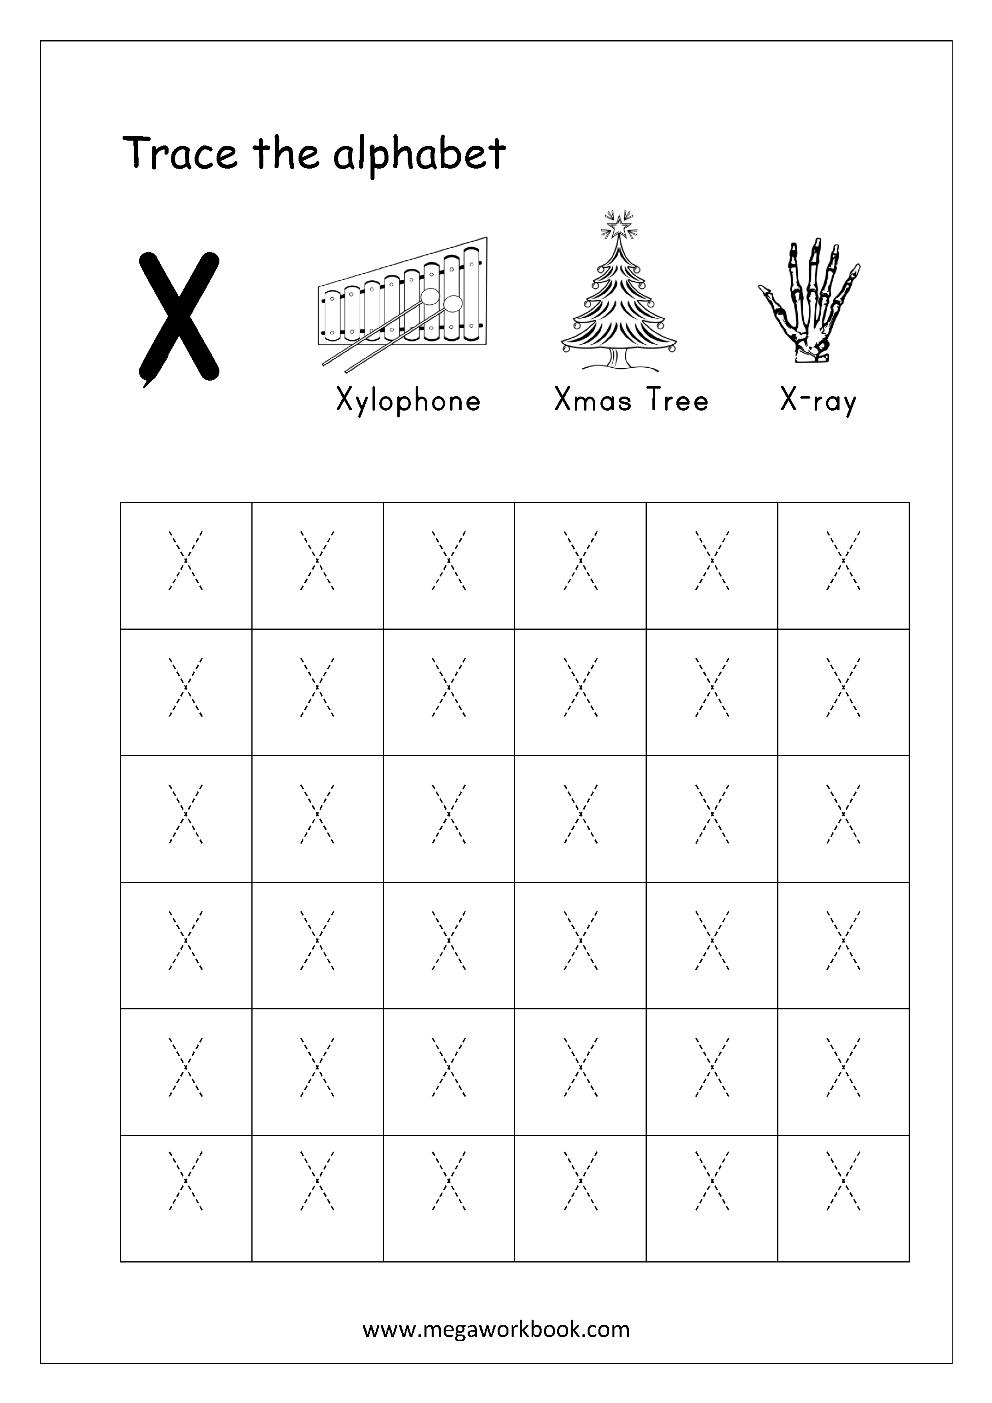 worksheet Letter X Worksheet free english worksheets alphabet tracing capital letters worksheet letter x